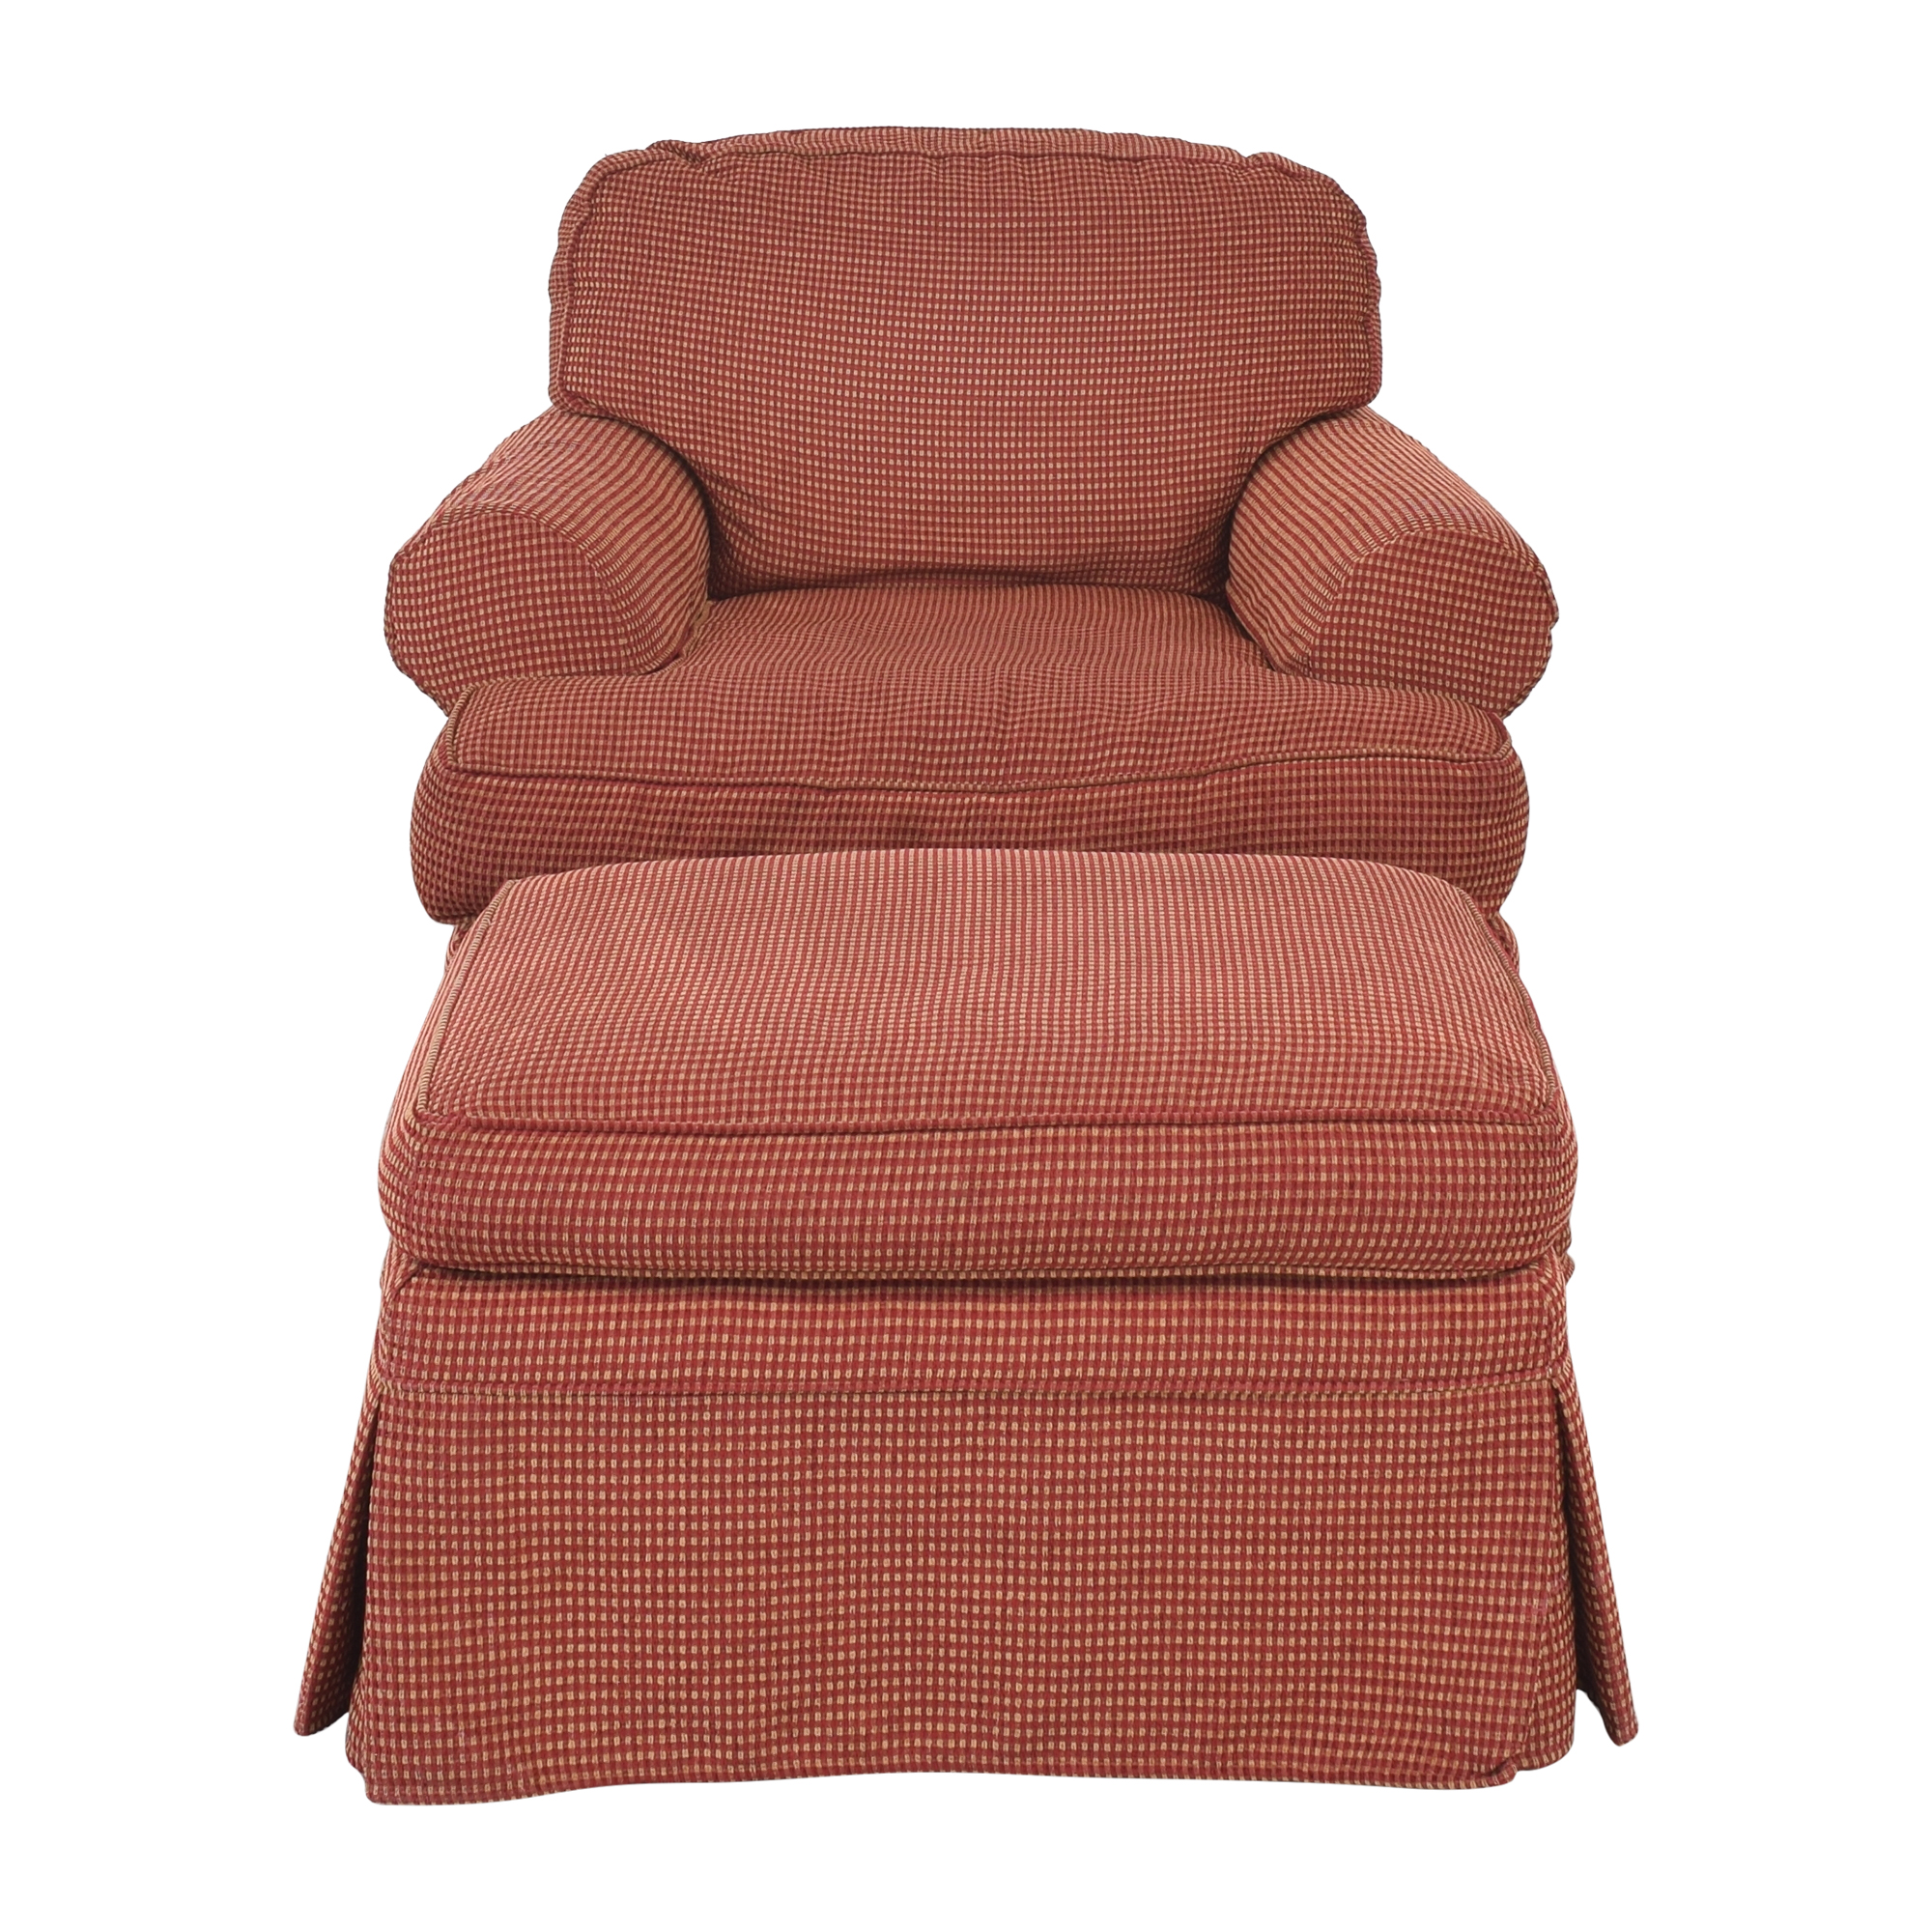 Wesley Hall Wesley Hall Lounge Chair with Ottoman dimensions